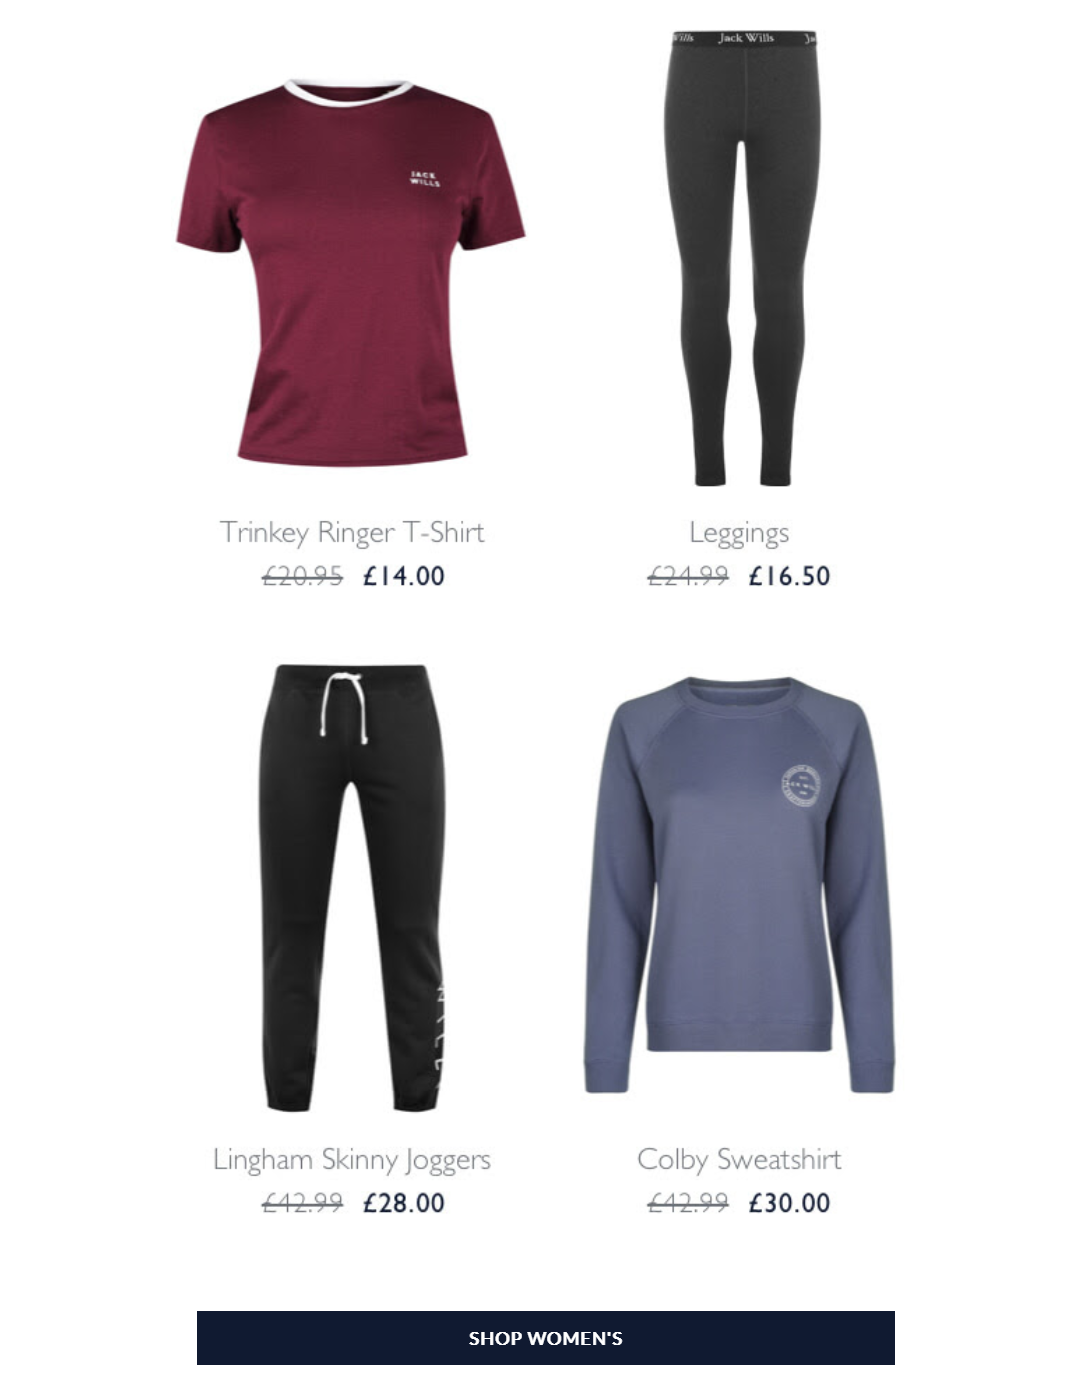 Get up to 30% OFF + Free Standard UK Delivery on orders over 50 Shop Now